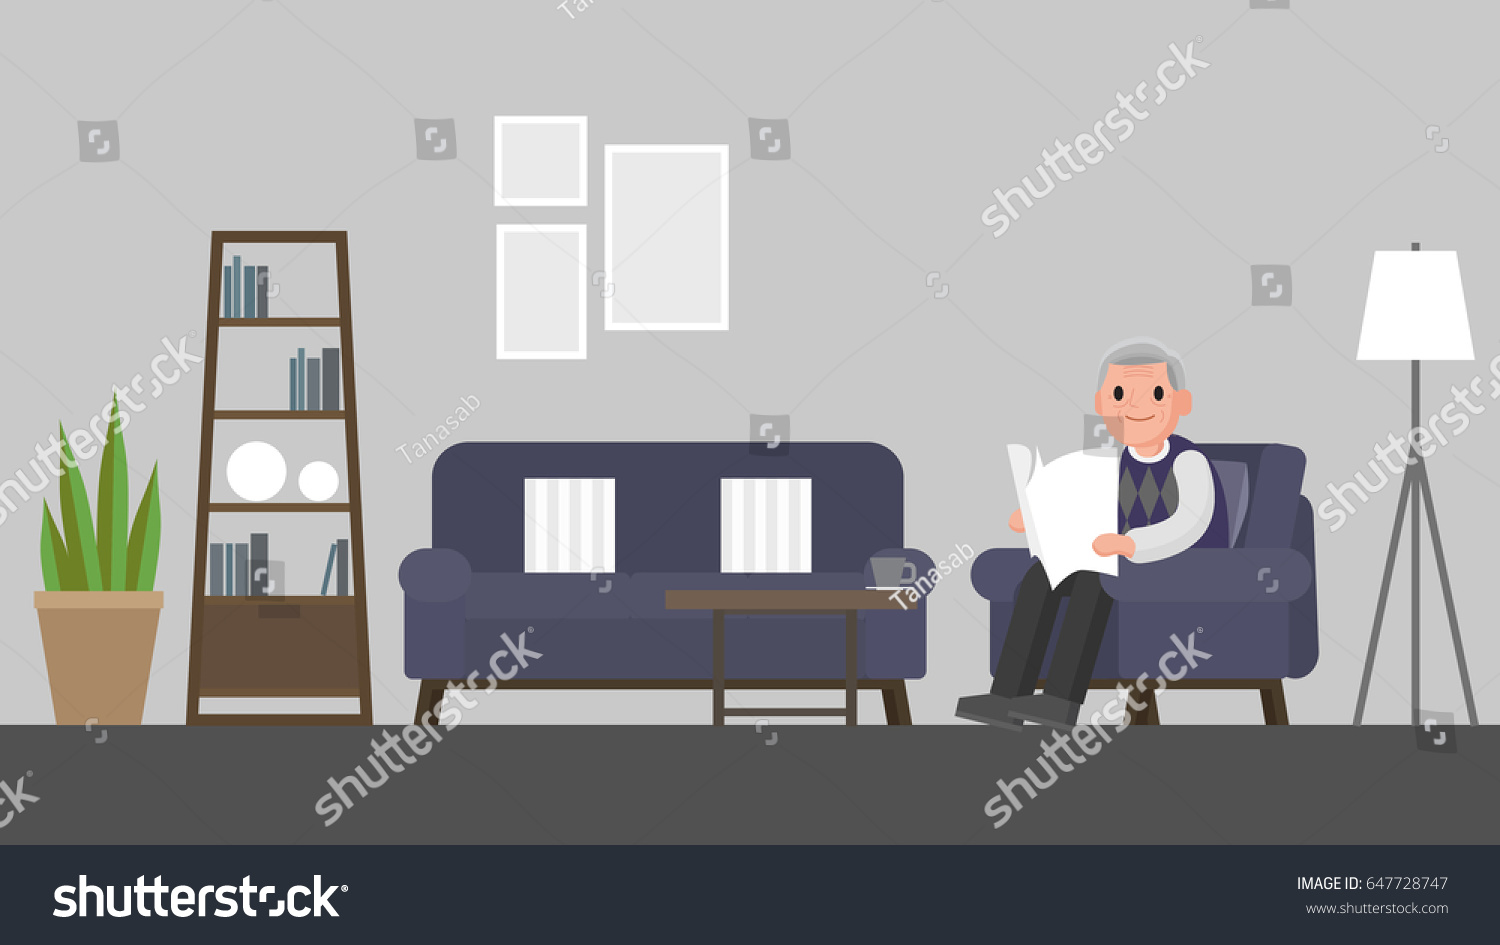 Grandfather Sitting On Sofa Living Room Stock Vector 647728747